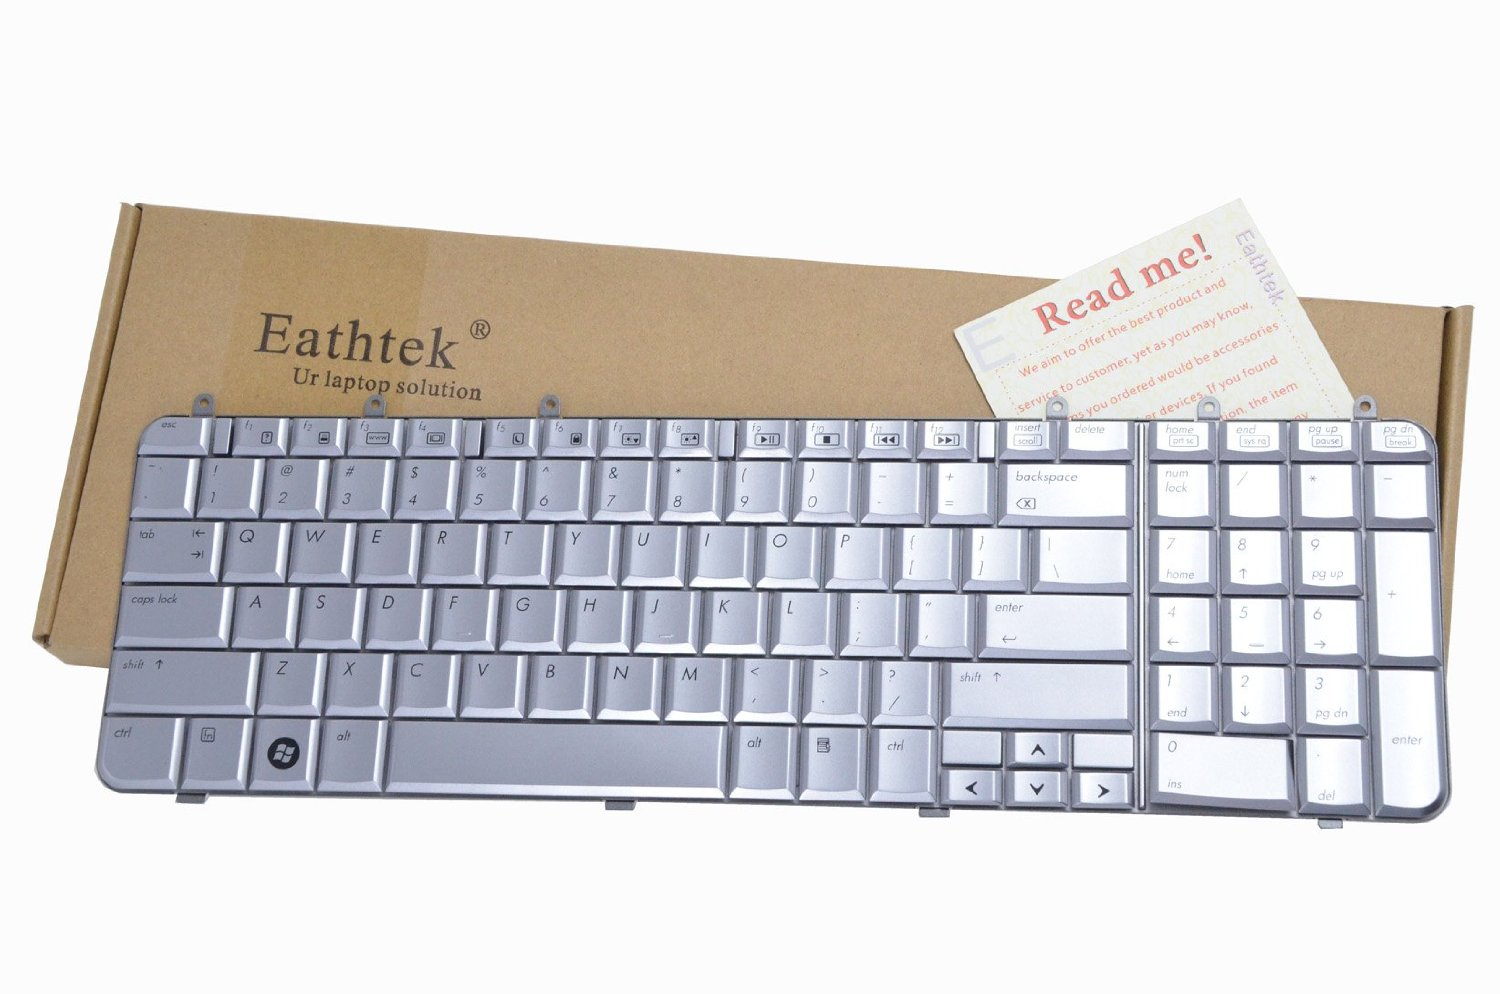 Eathtek Laptop Replacement Keyboard for HP Pavilion dv7 dv7-1100 dv7-1451nr dv7-1464nr dv7-1468nr dv7t-1200 dv7t-1100 dv7t-1000 dv7-1000 DV7-1245DX SK-H8101 PK1303X0500 series Silver US Layout